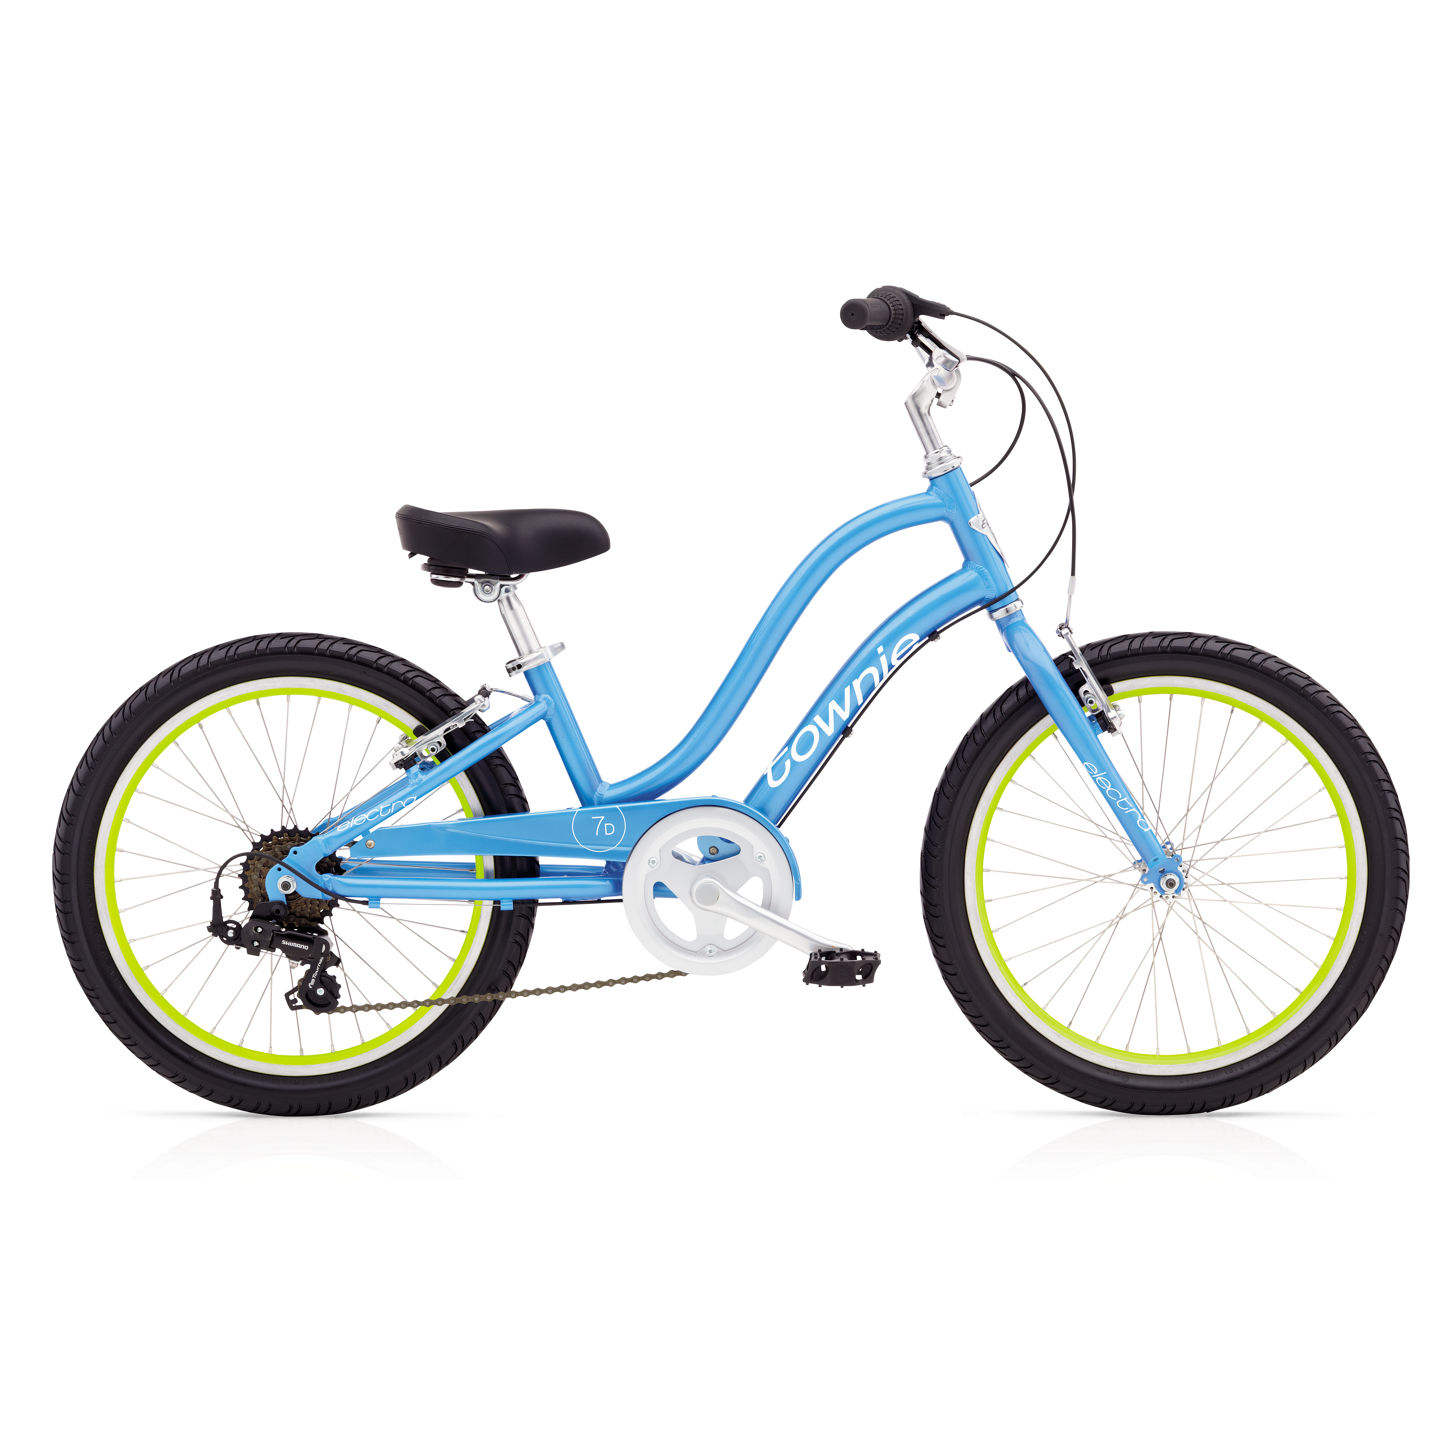 Electra Townie 7d 20 Inch Girls Ziggy S Cycle